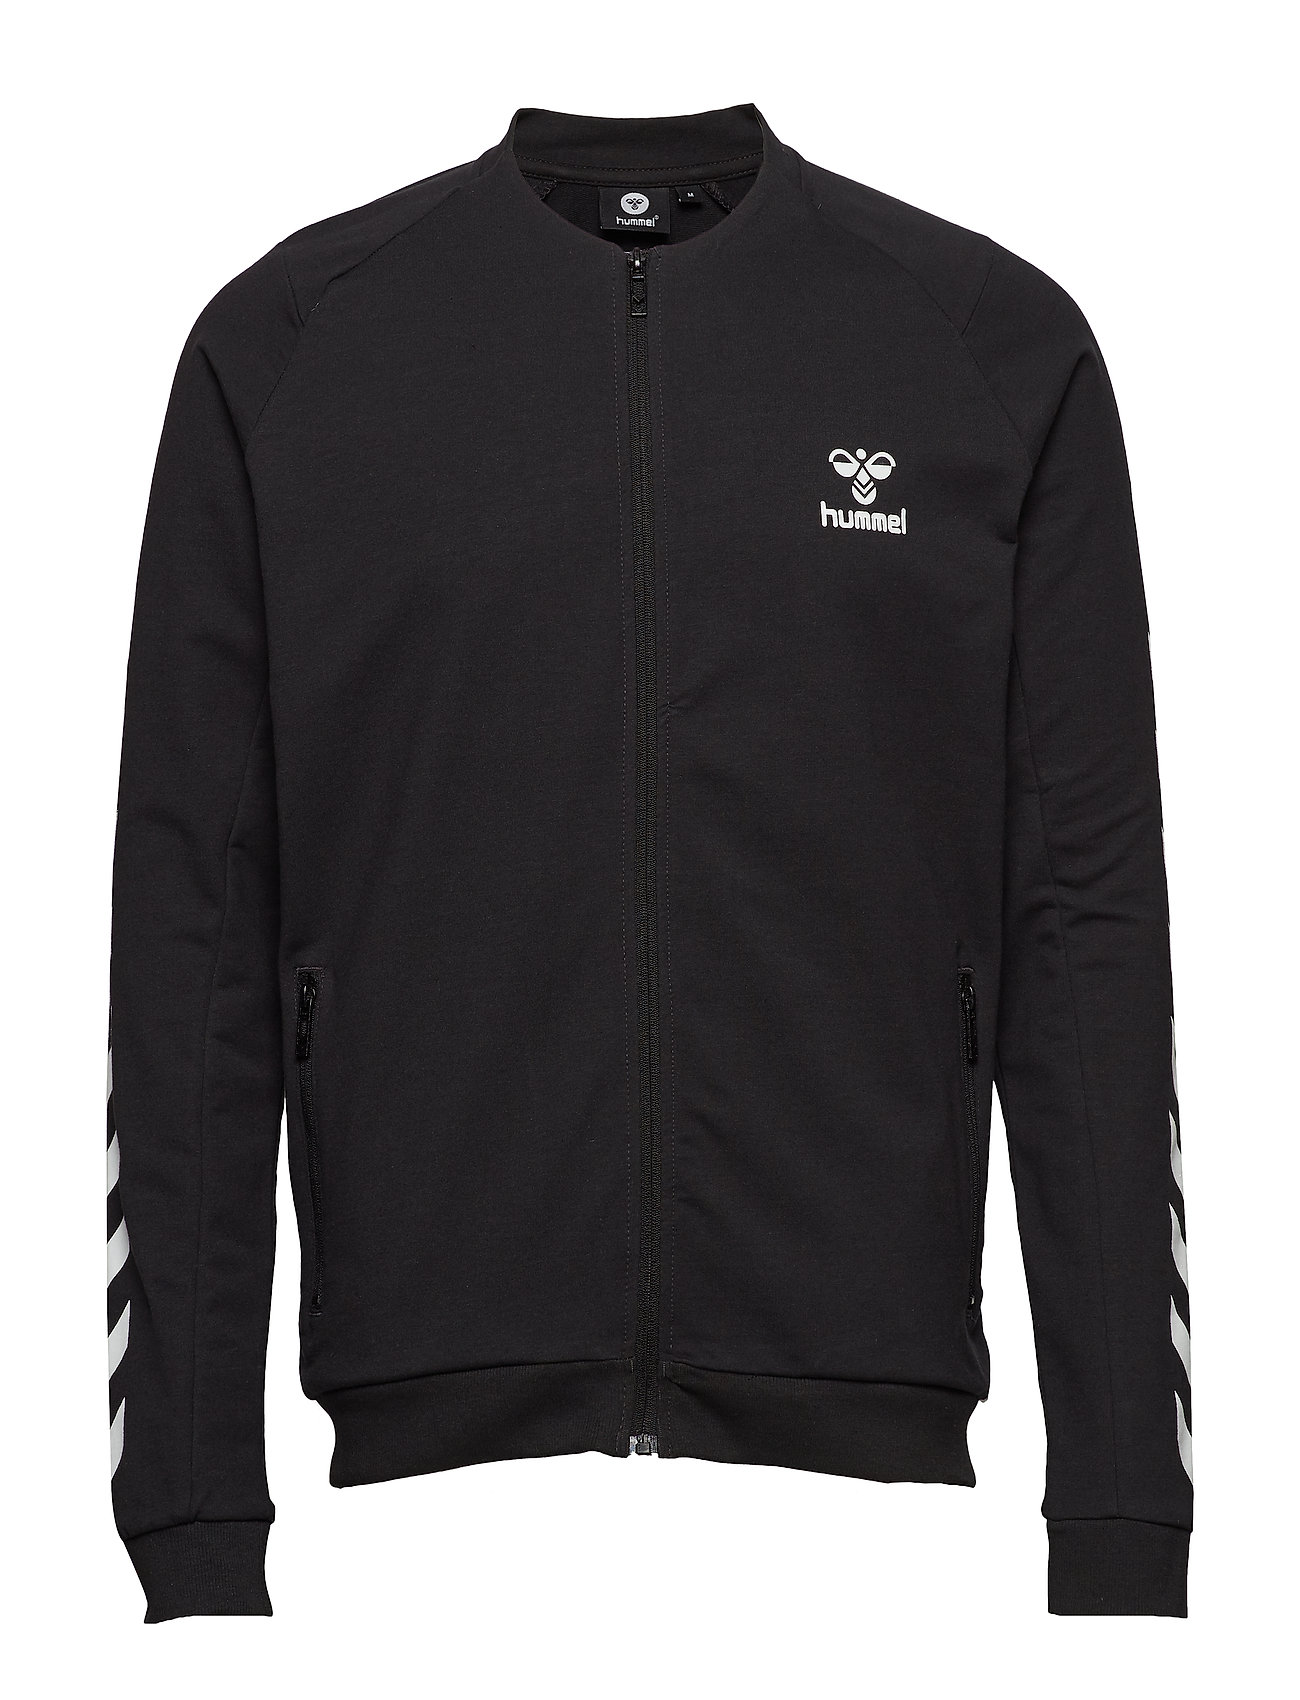 Hummel HMLRAY ZIP JACKET - BLACK